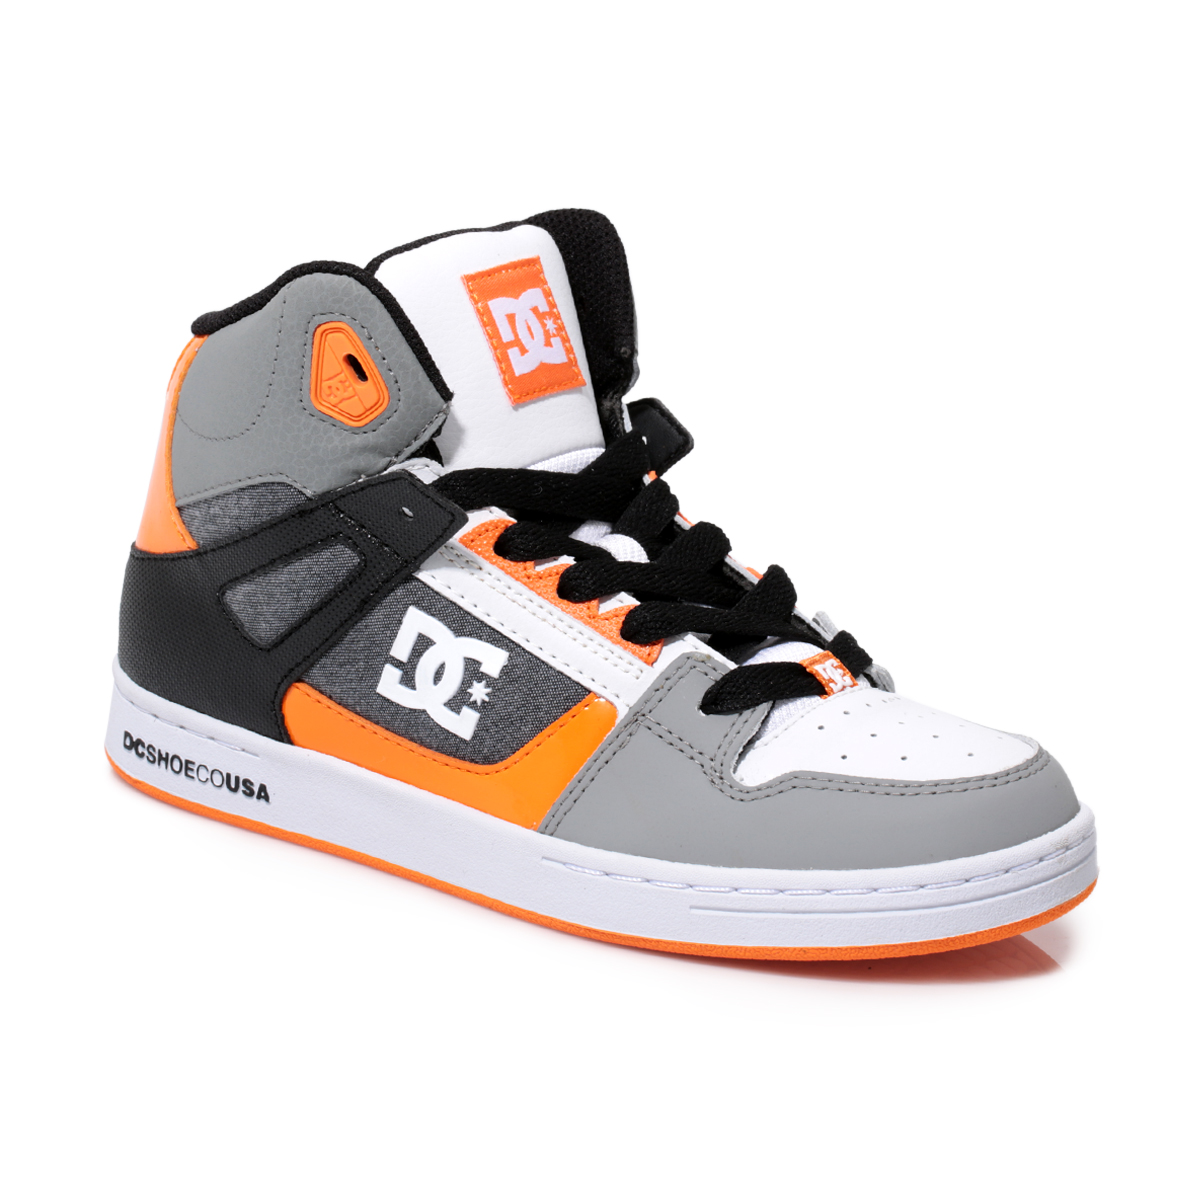 Cheap Dc Shoes For Boys